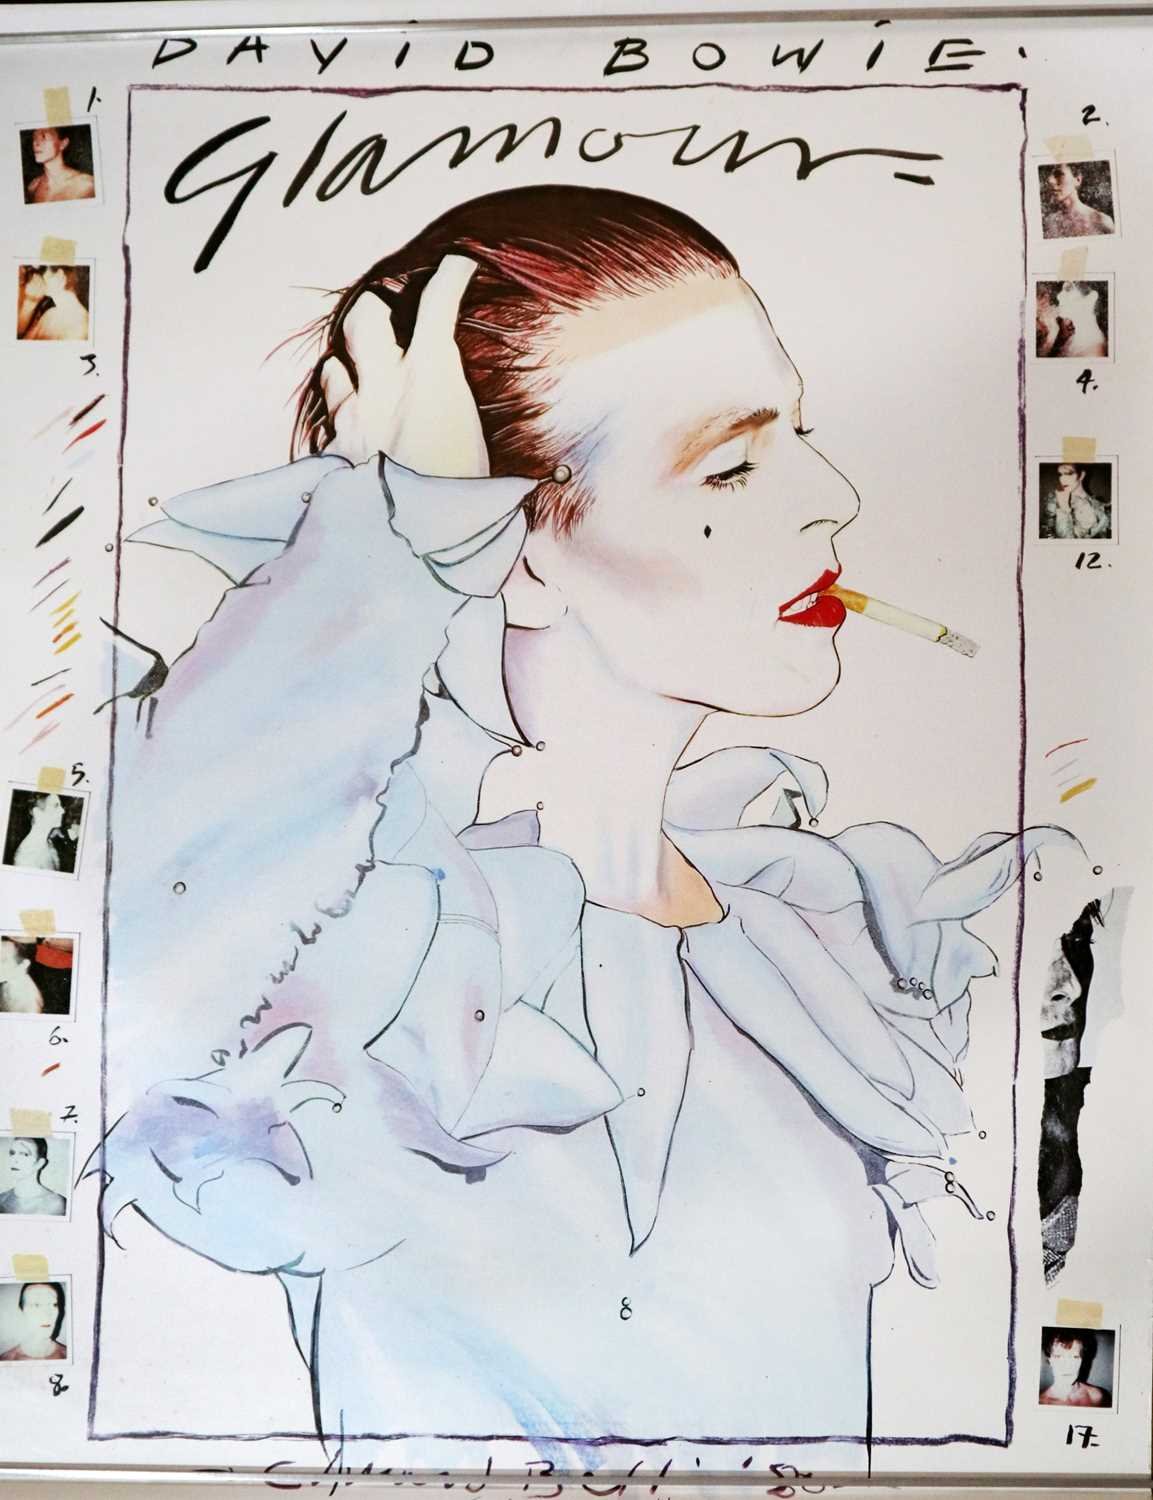 Lot 14 - Edward Bell (British Contemporary) David Bowie Glamour Poster